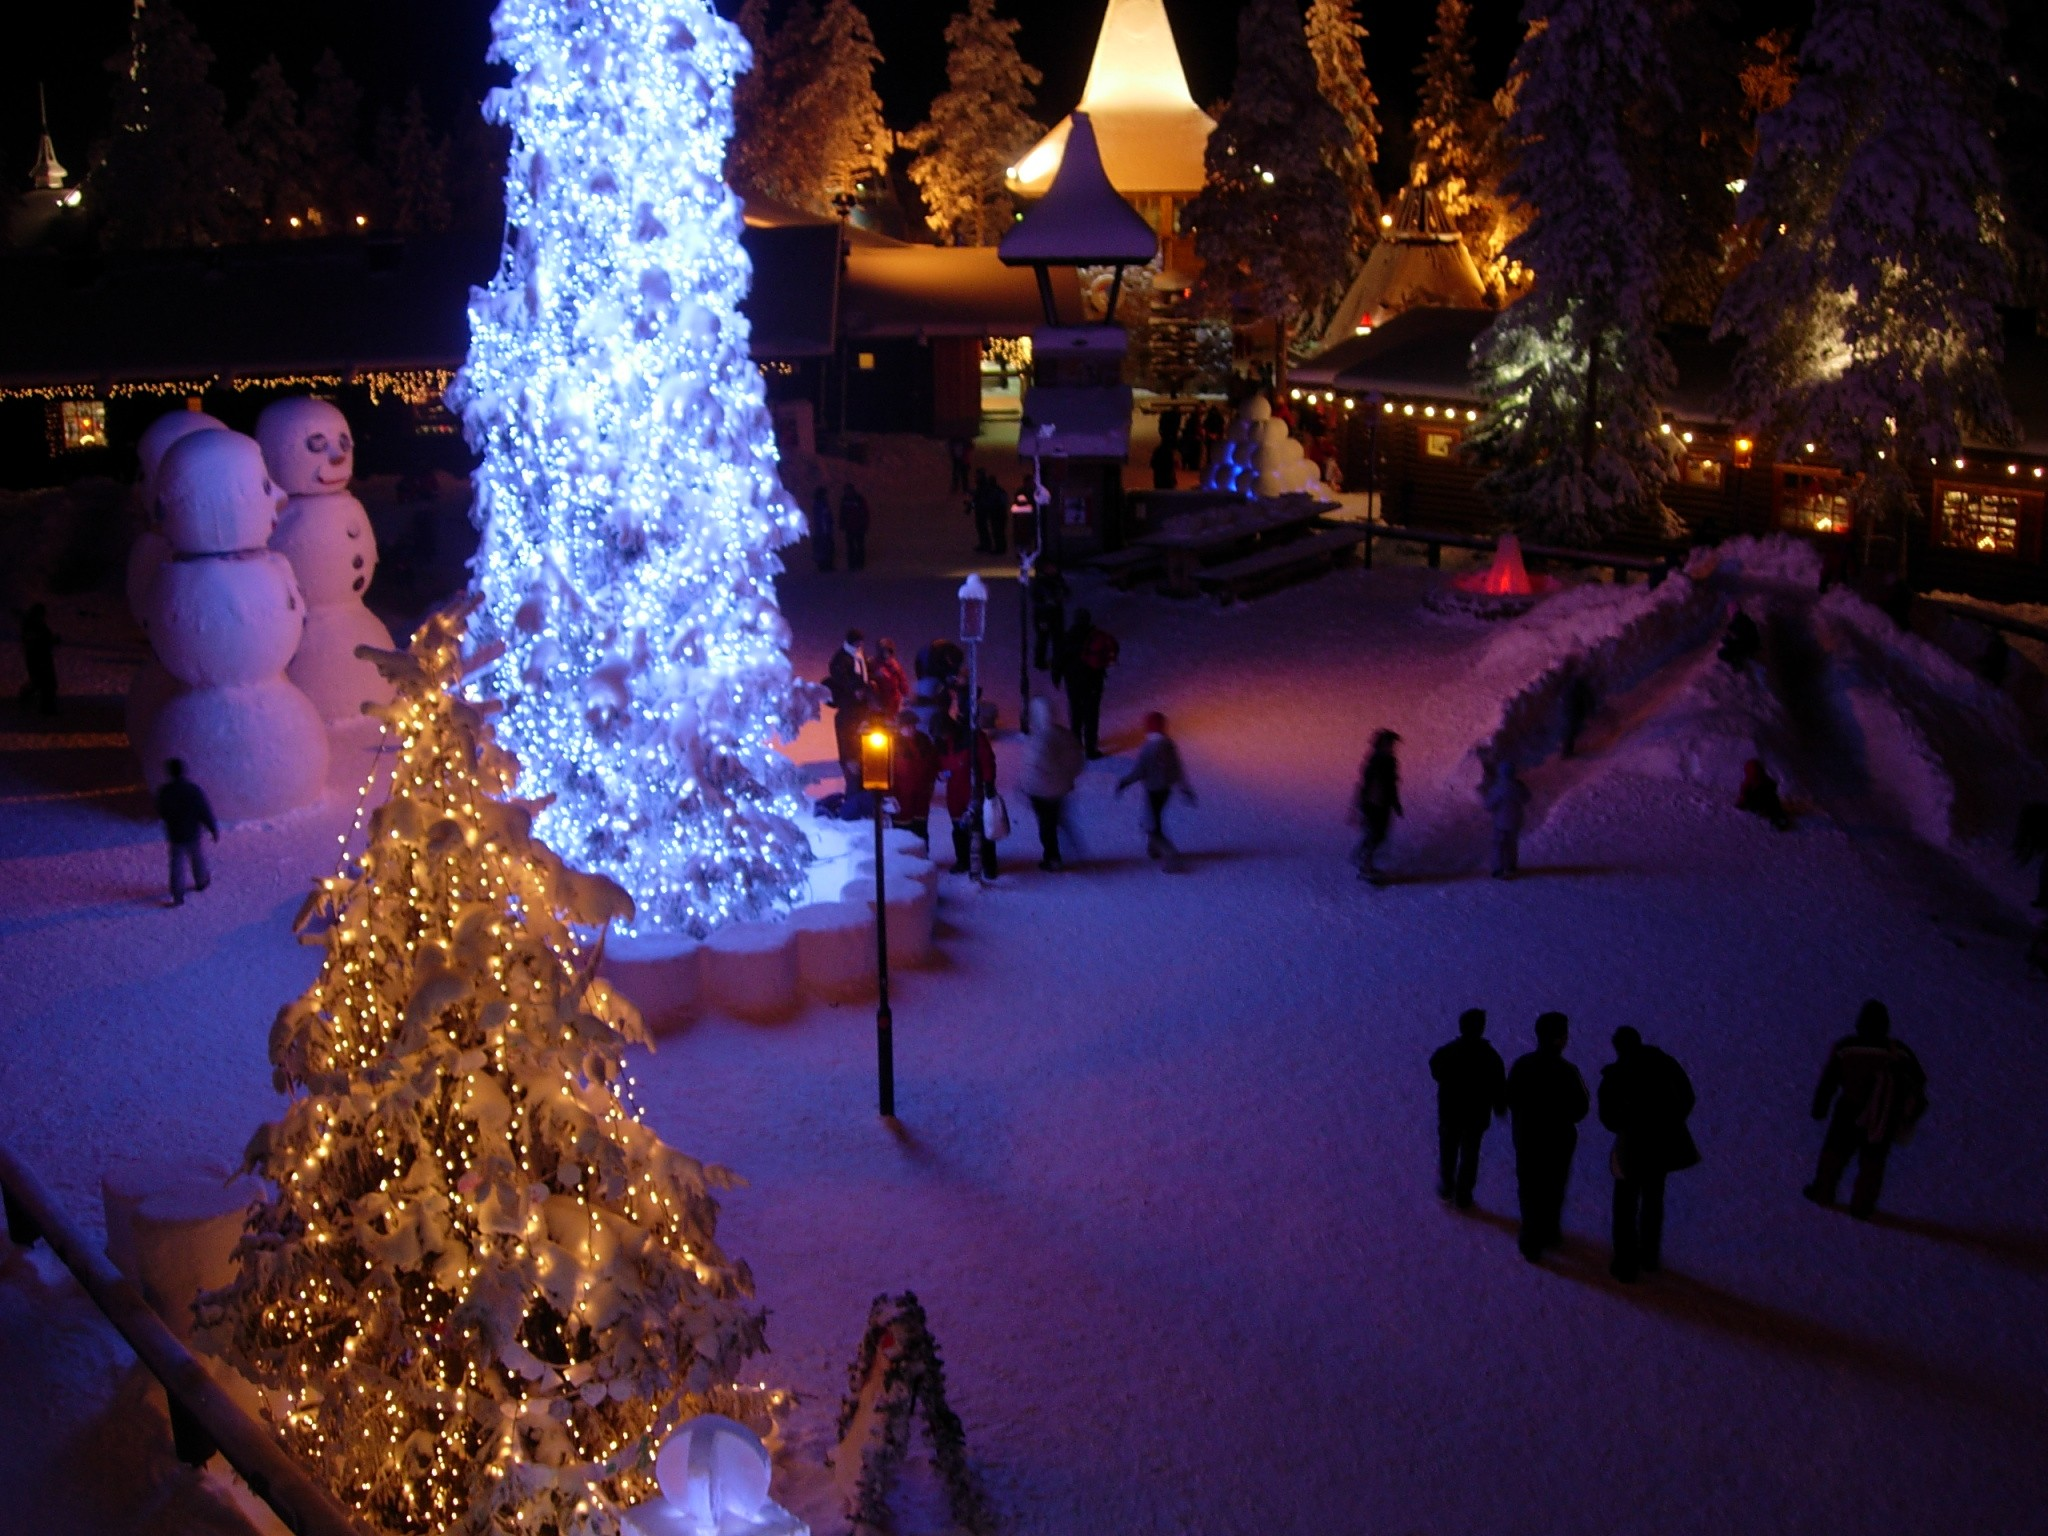 Rovaniemi Santa Claus Welcomes Tourists at Santa Claus Village Places To Visit In Finland